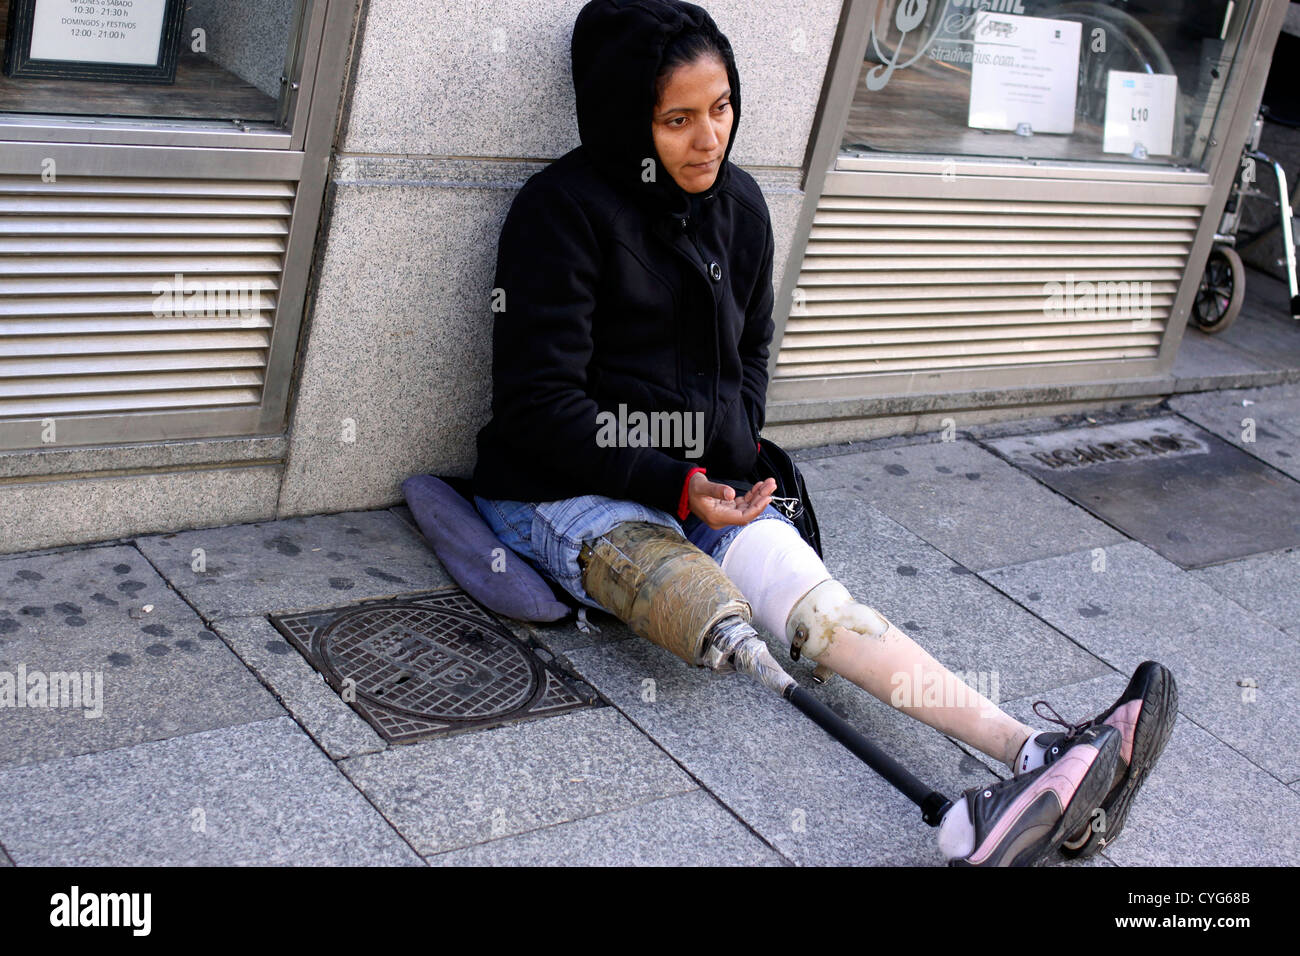 Woman with artificial legs begging on a street in Madrid - Stock Image